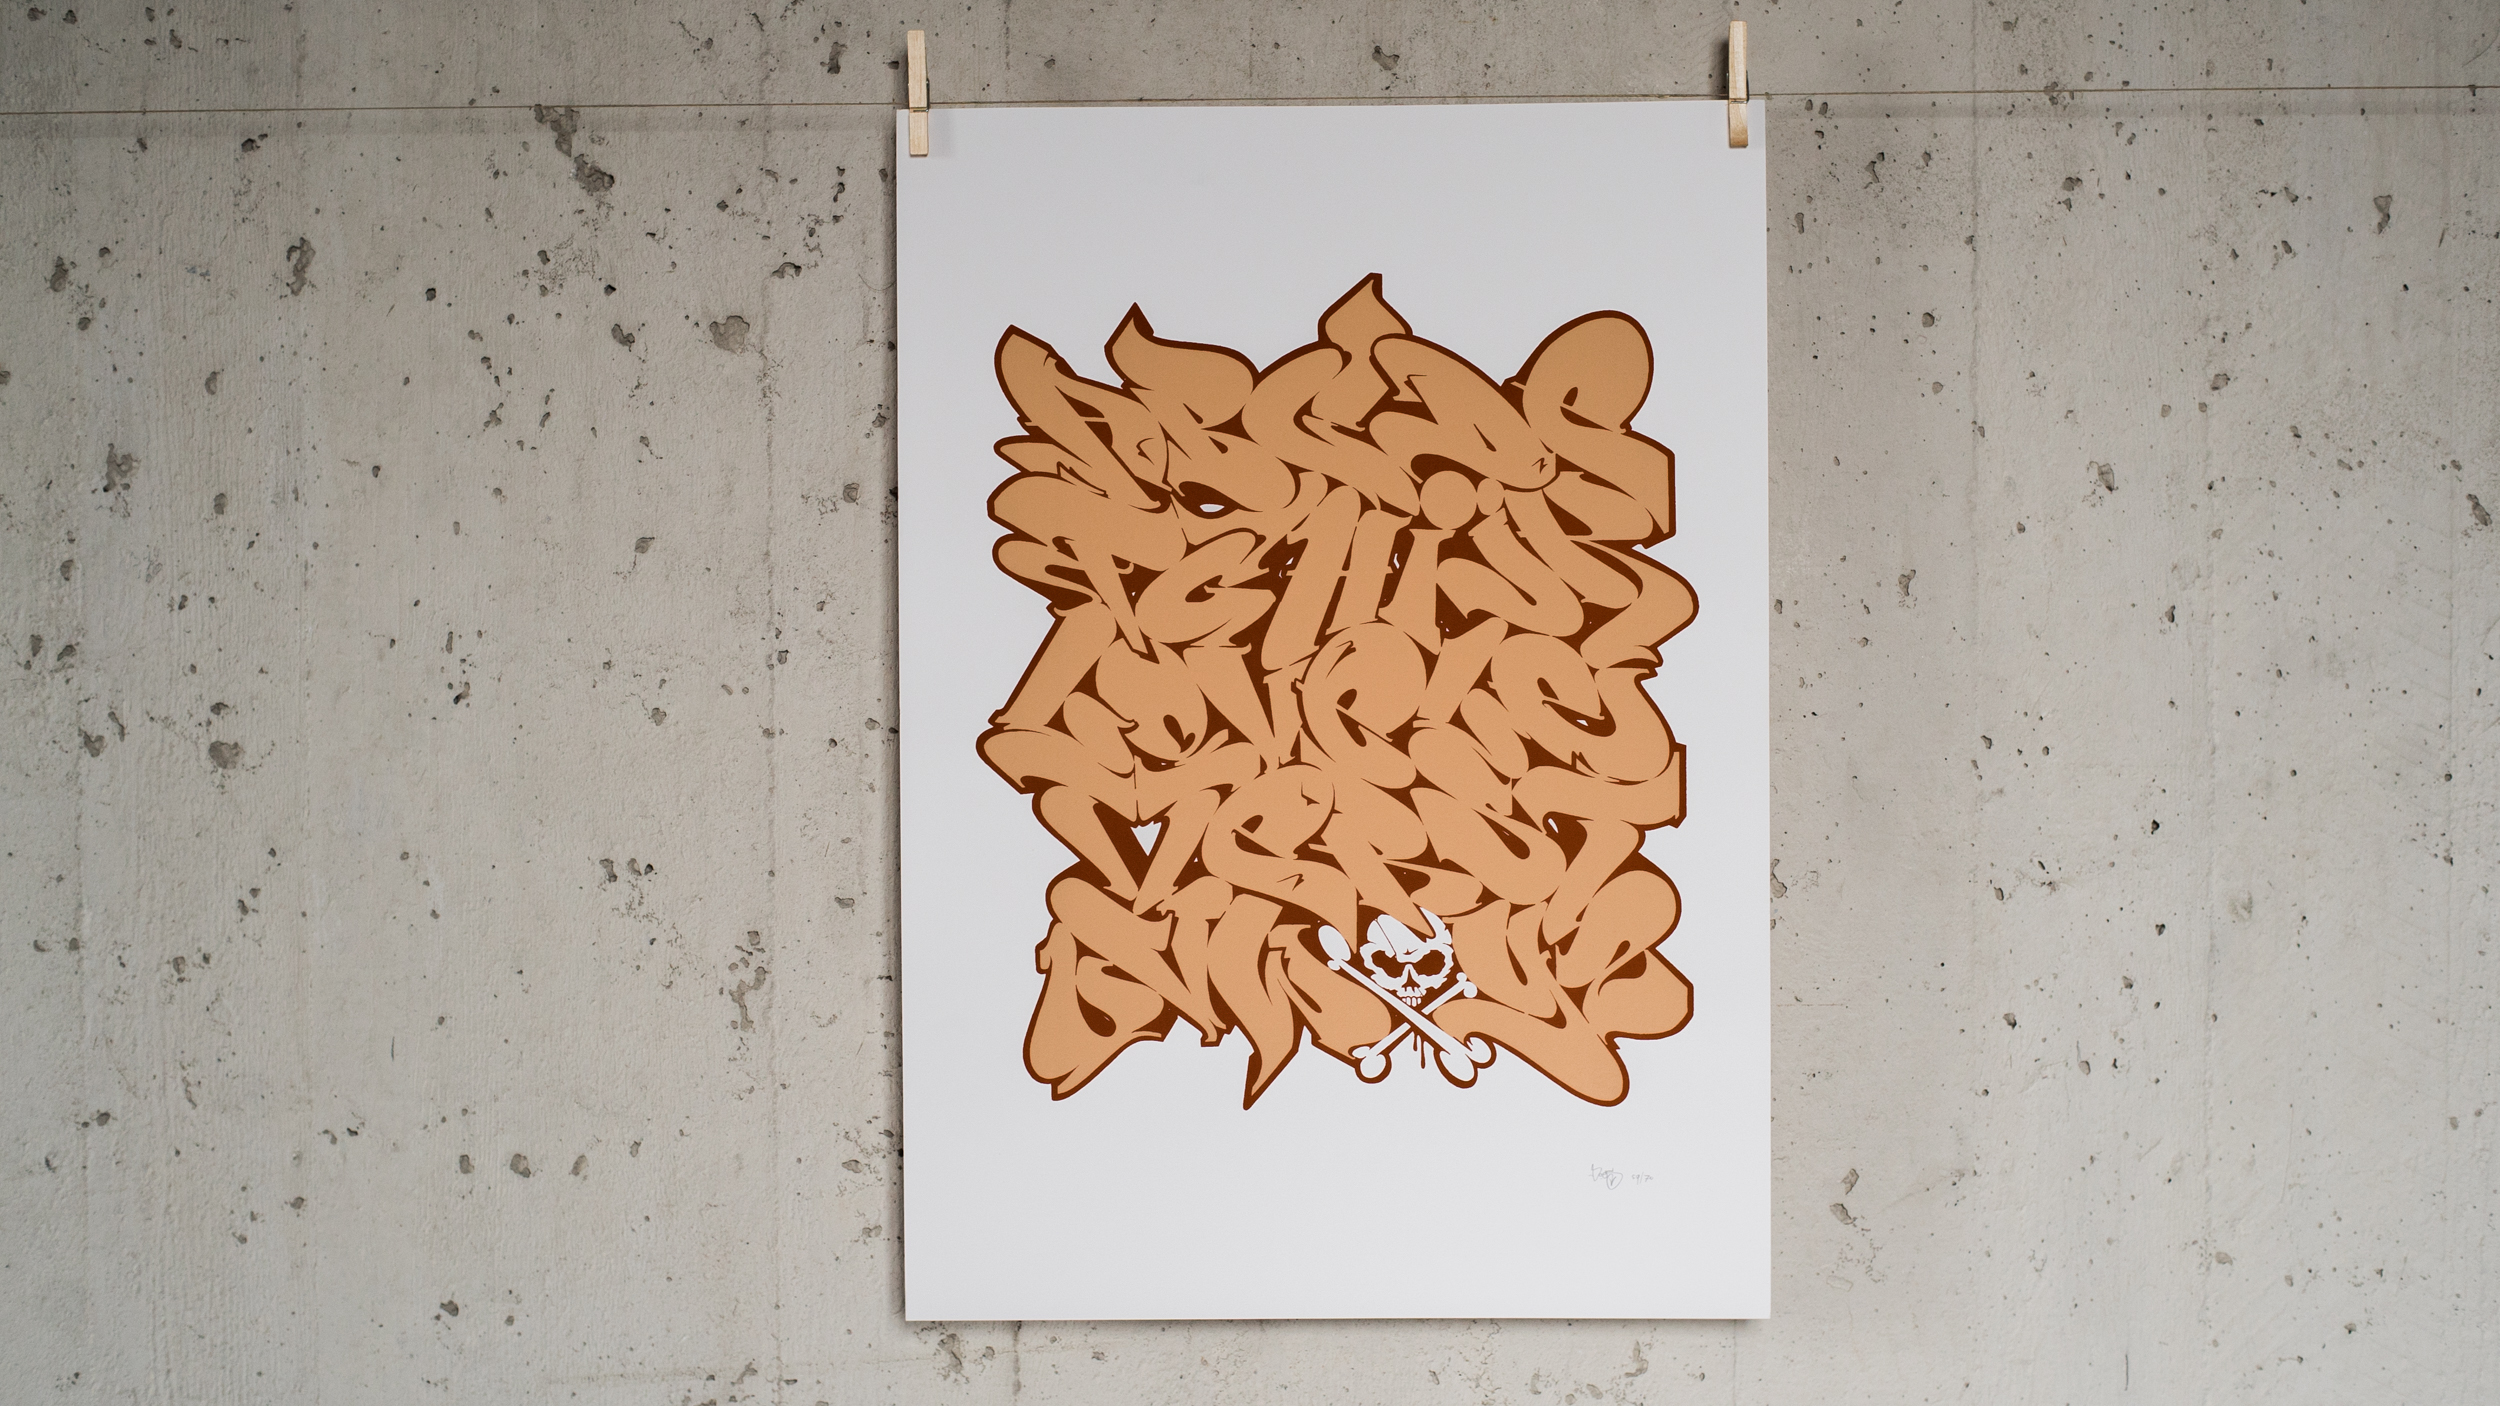 A work by Does - Print loveletters alphabet